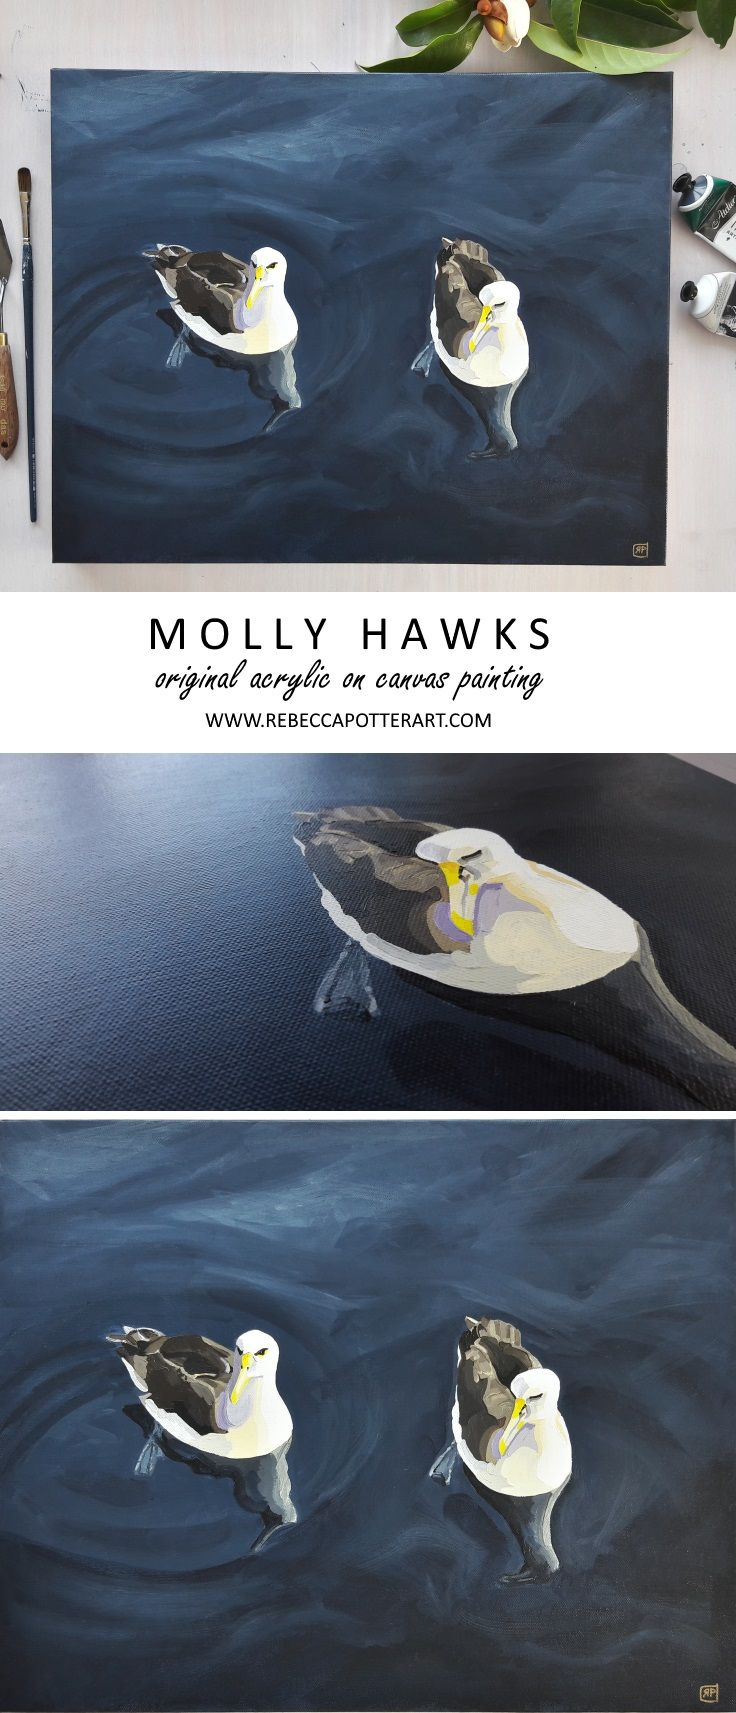 Molly Hawks floating on the Ocean. Original Acrylic on Canvas Painting by Rebecca Potter. July 2017 [SOLD]